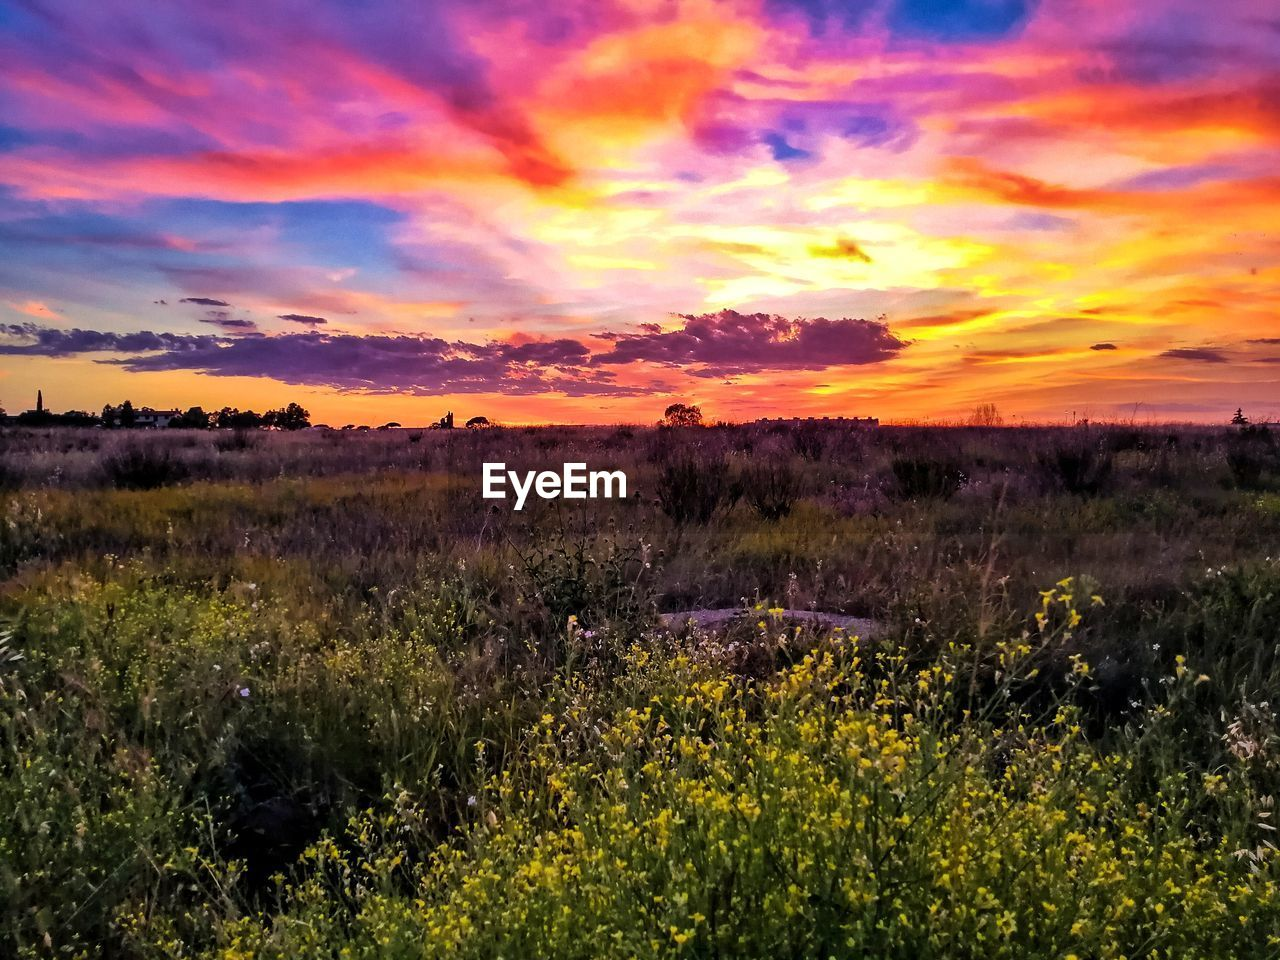 SCENIC VIEW OF PURPLE FIELD AGAINST SKY DURING SUNSET